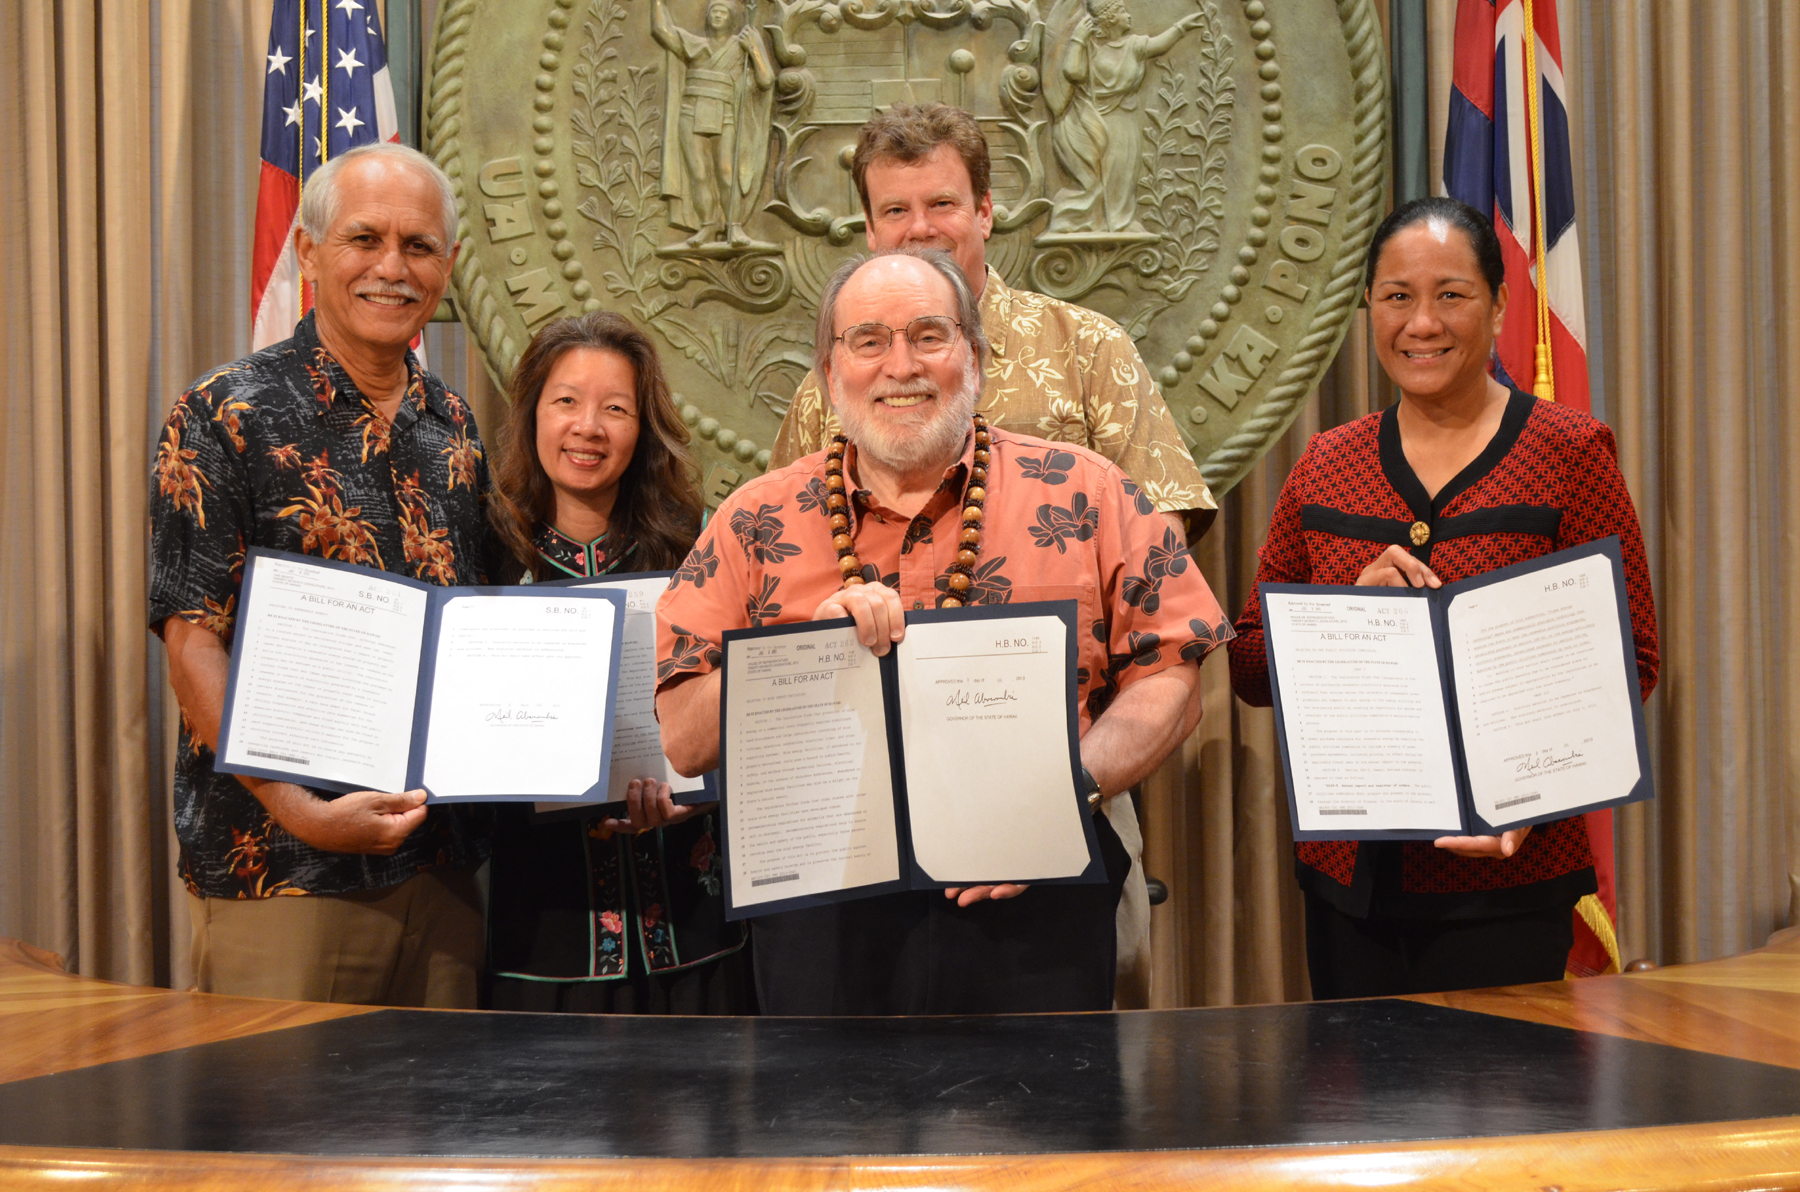 PV Renter bill signed into law in Hawaii